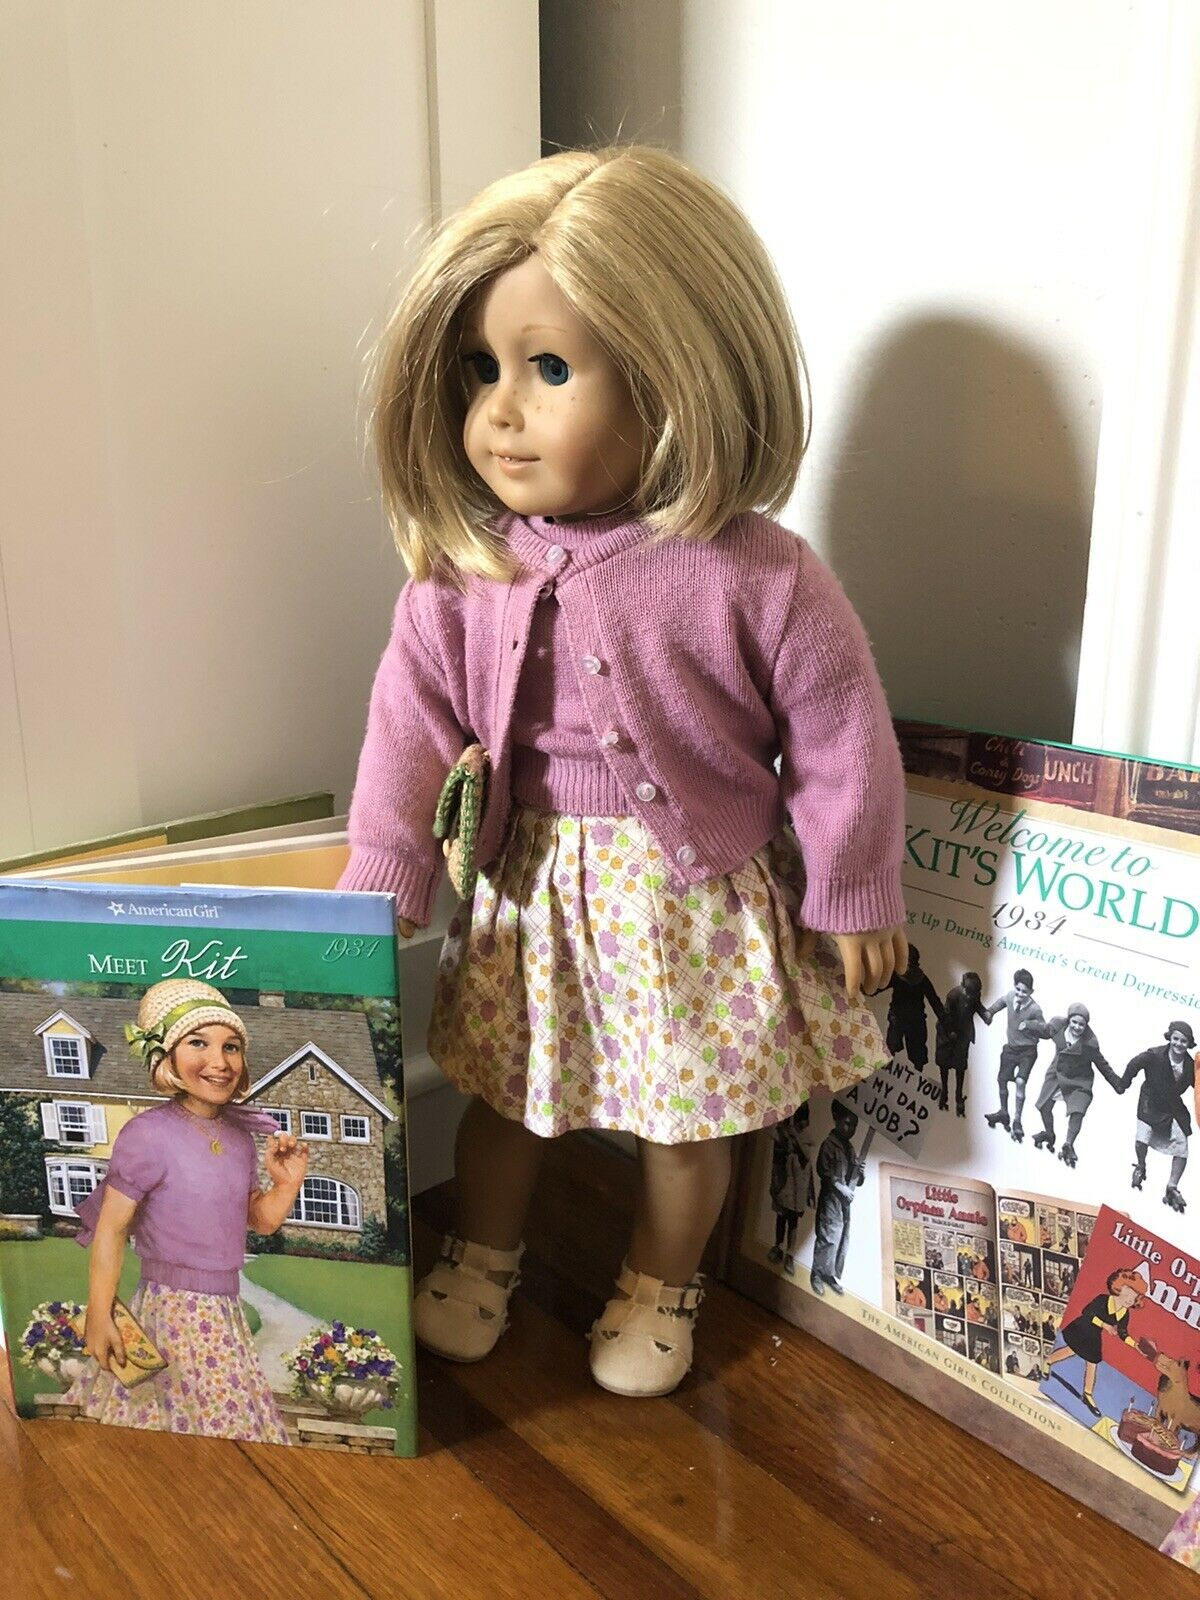 American Girl Doll Pleasant Company Kit Kittrotge With Books